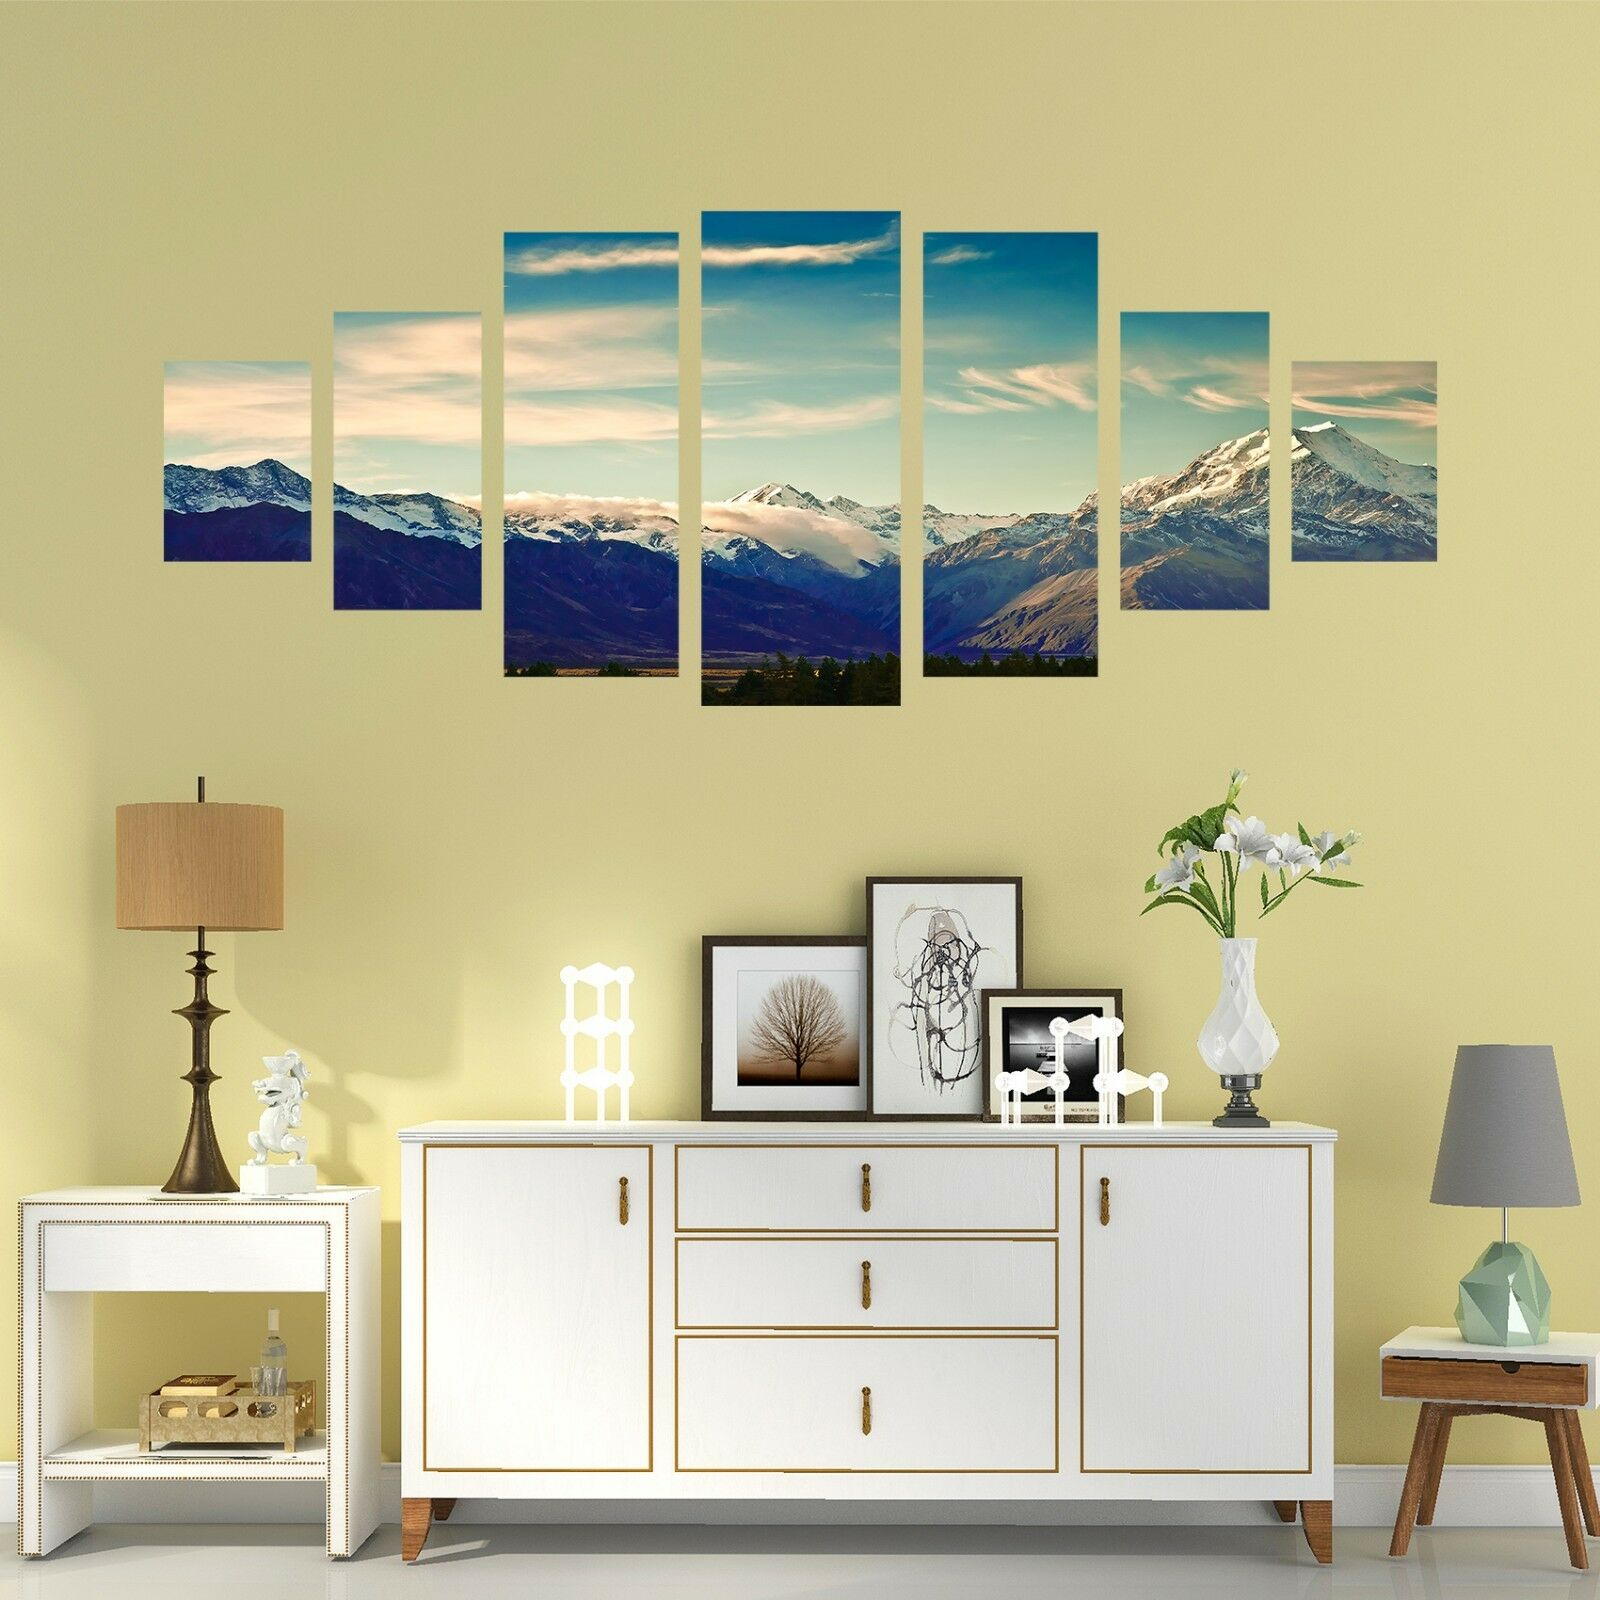 3D Mountain Sky 72 Unframed Print Wall Paper Decal Wall Deco Indoor AJ Jenny